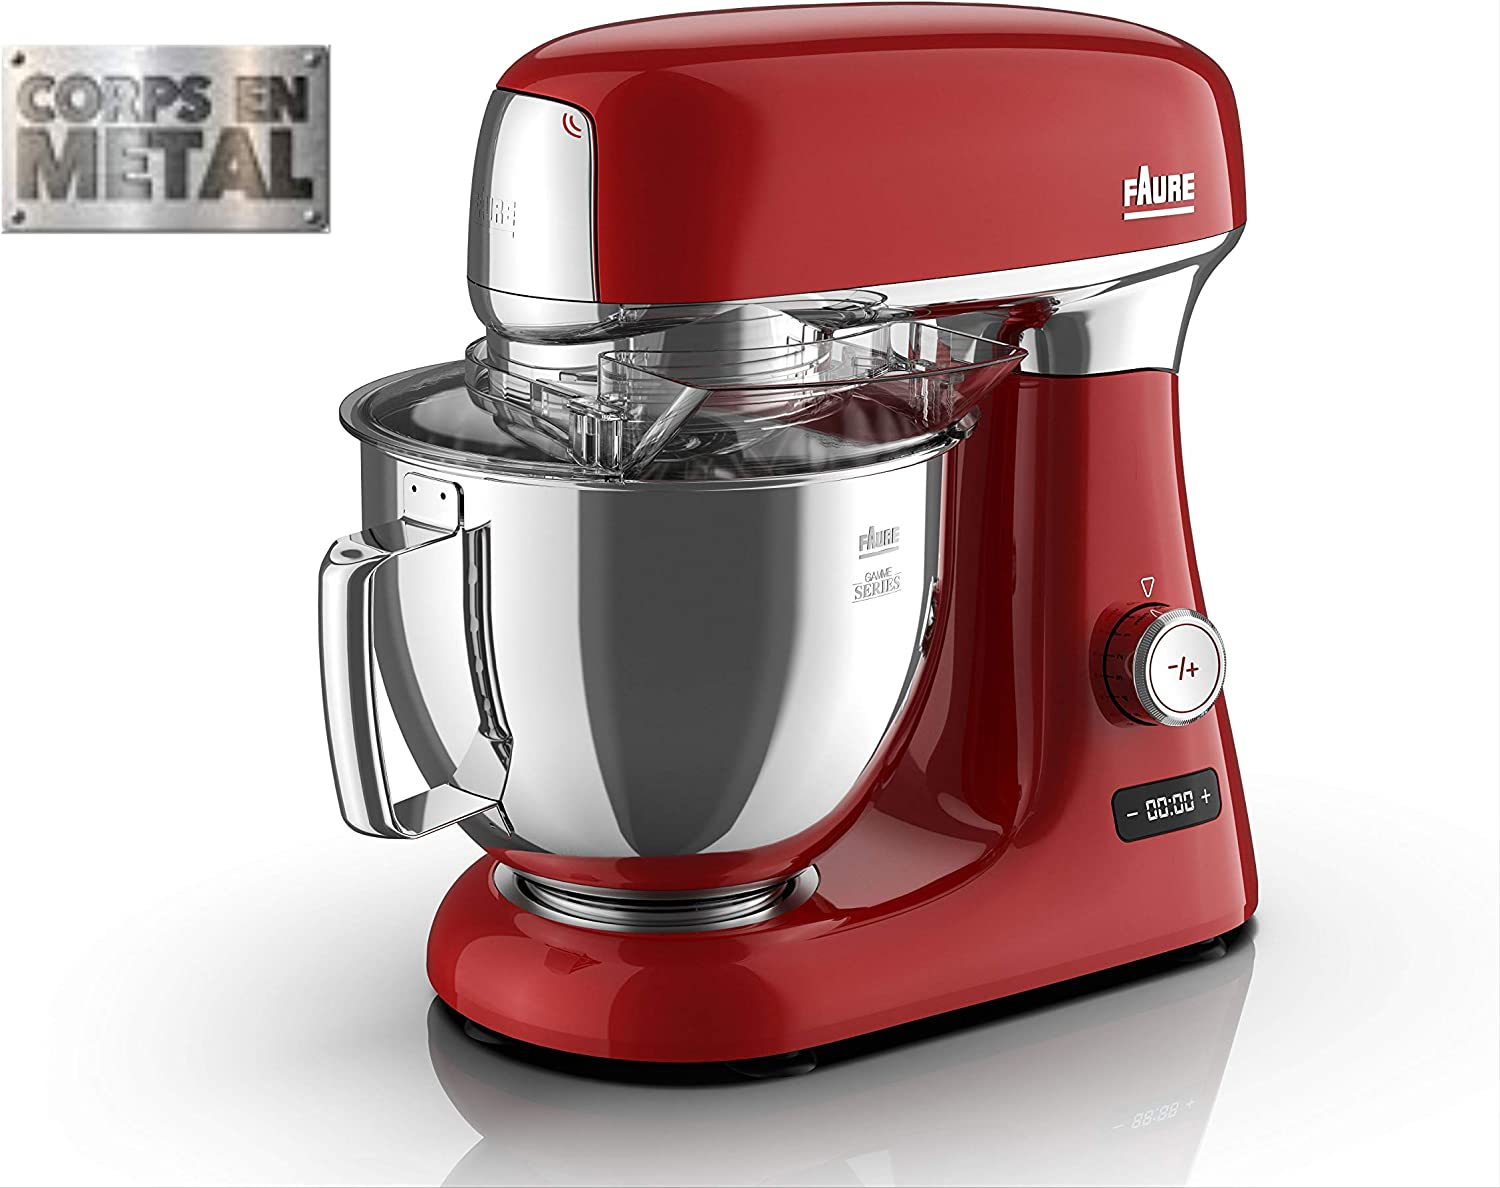 Faure FKM-104MS1 Robot - Culinario (4,8 L), color rojo: Amazon.es ...